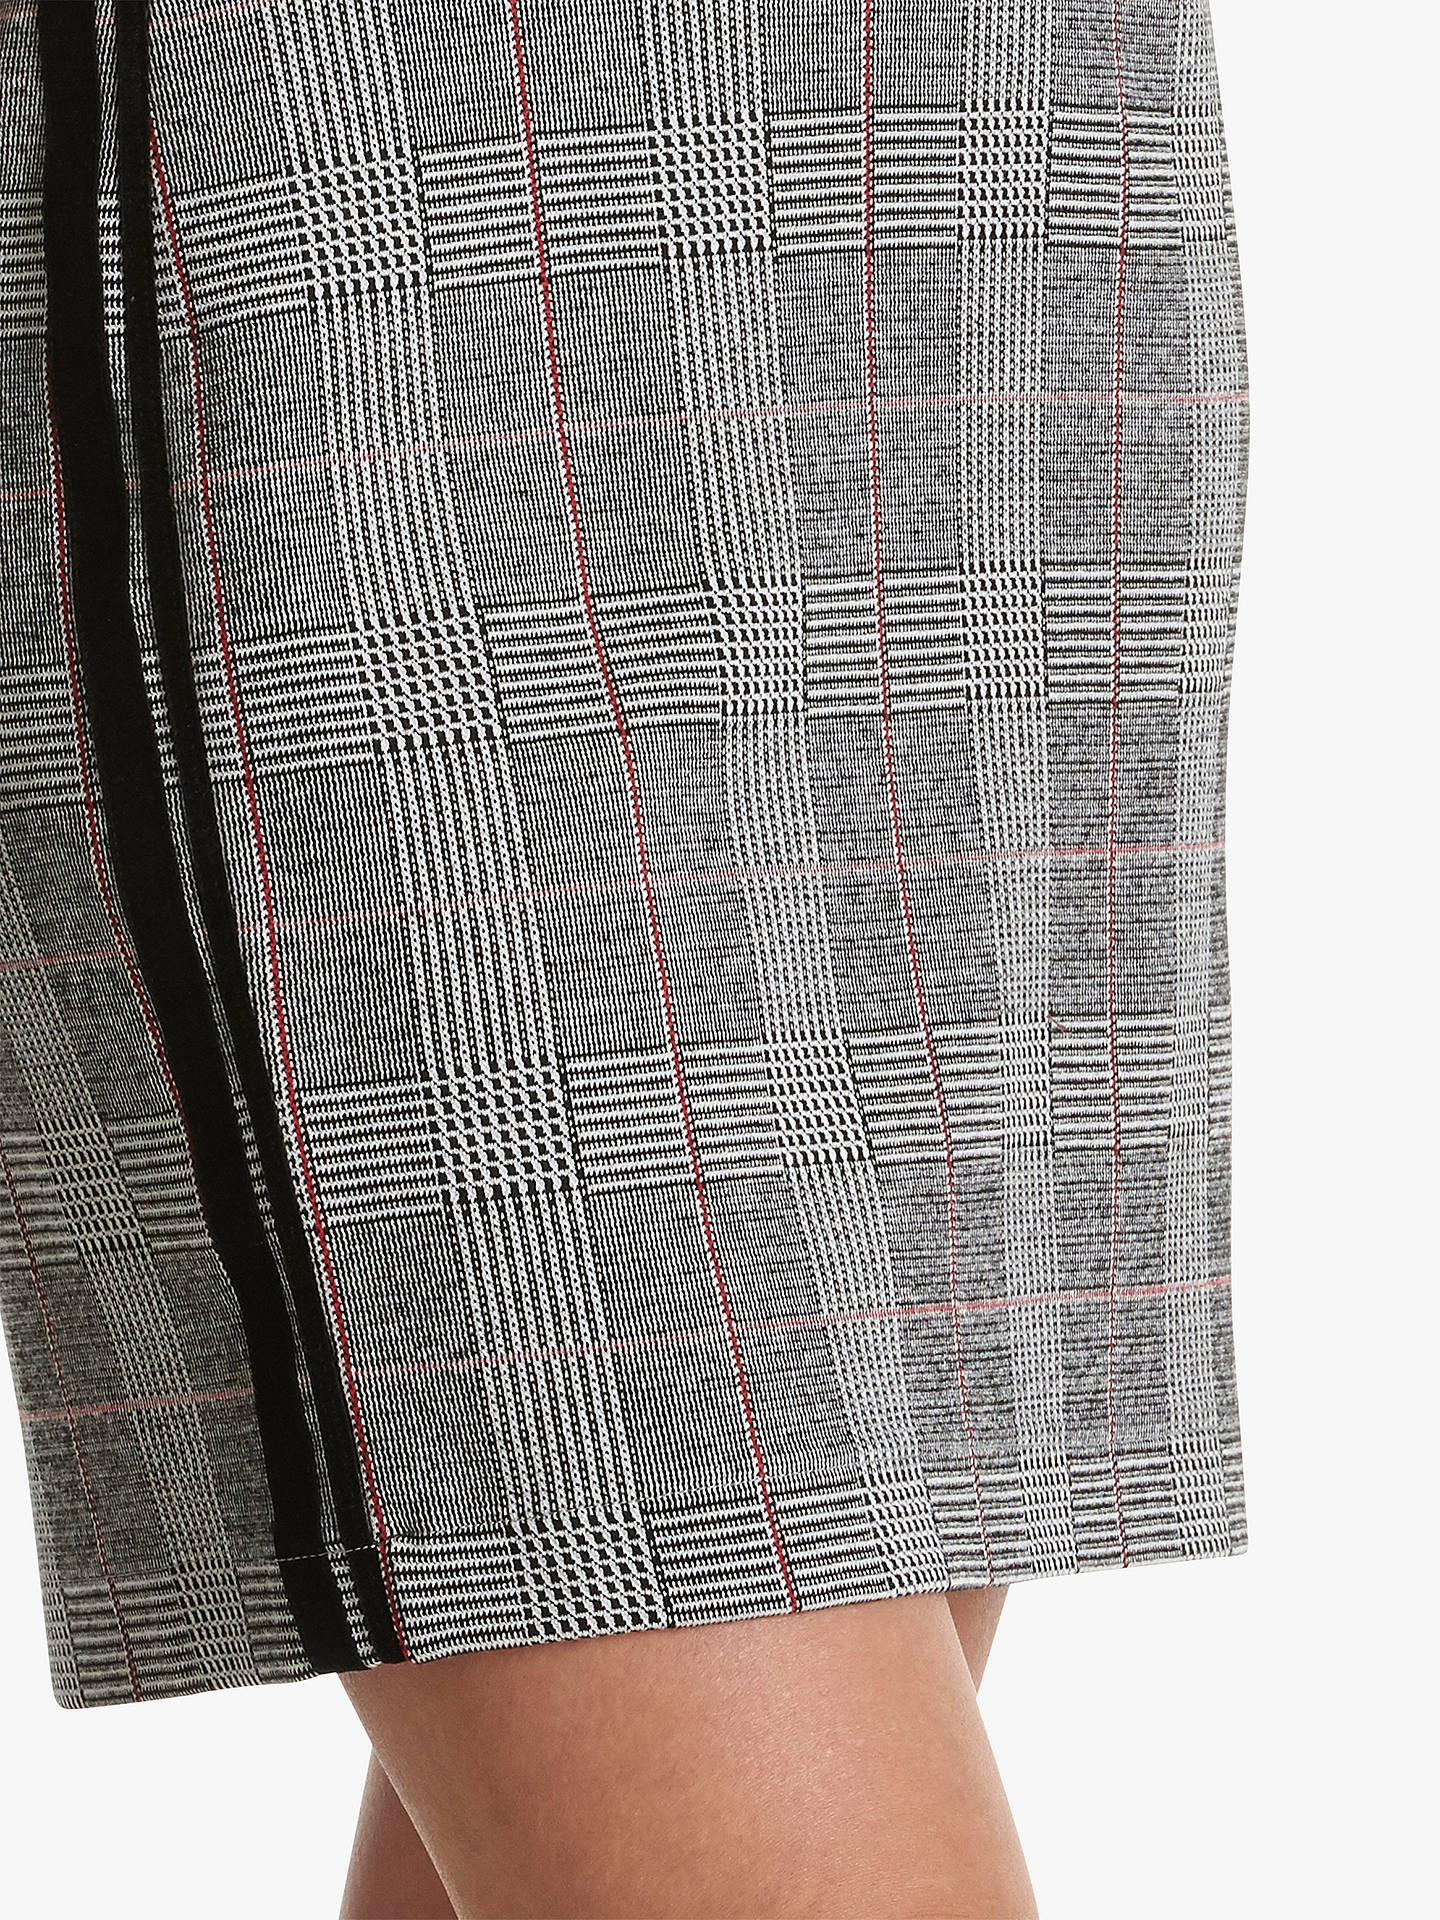 Buy Betty Barclay Check Skirt, Black/White, 10 Online at johnlewis.com